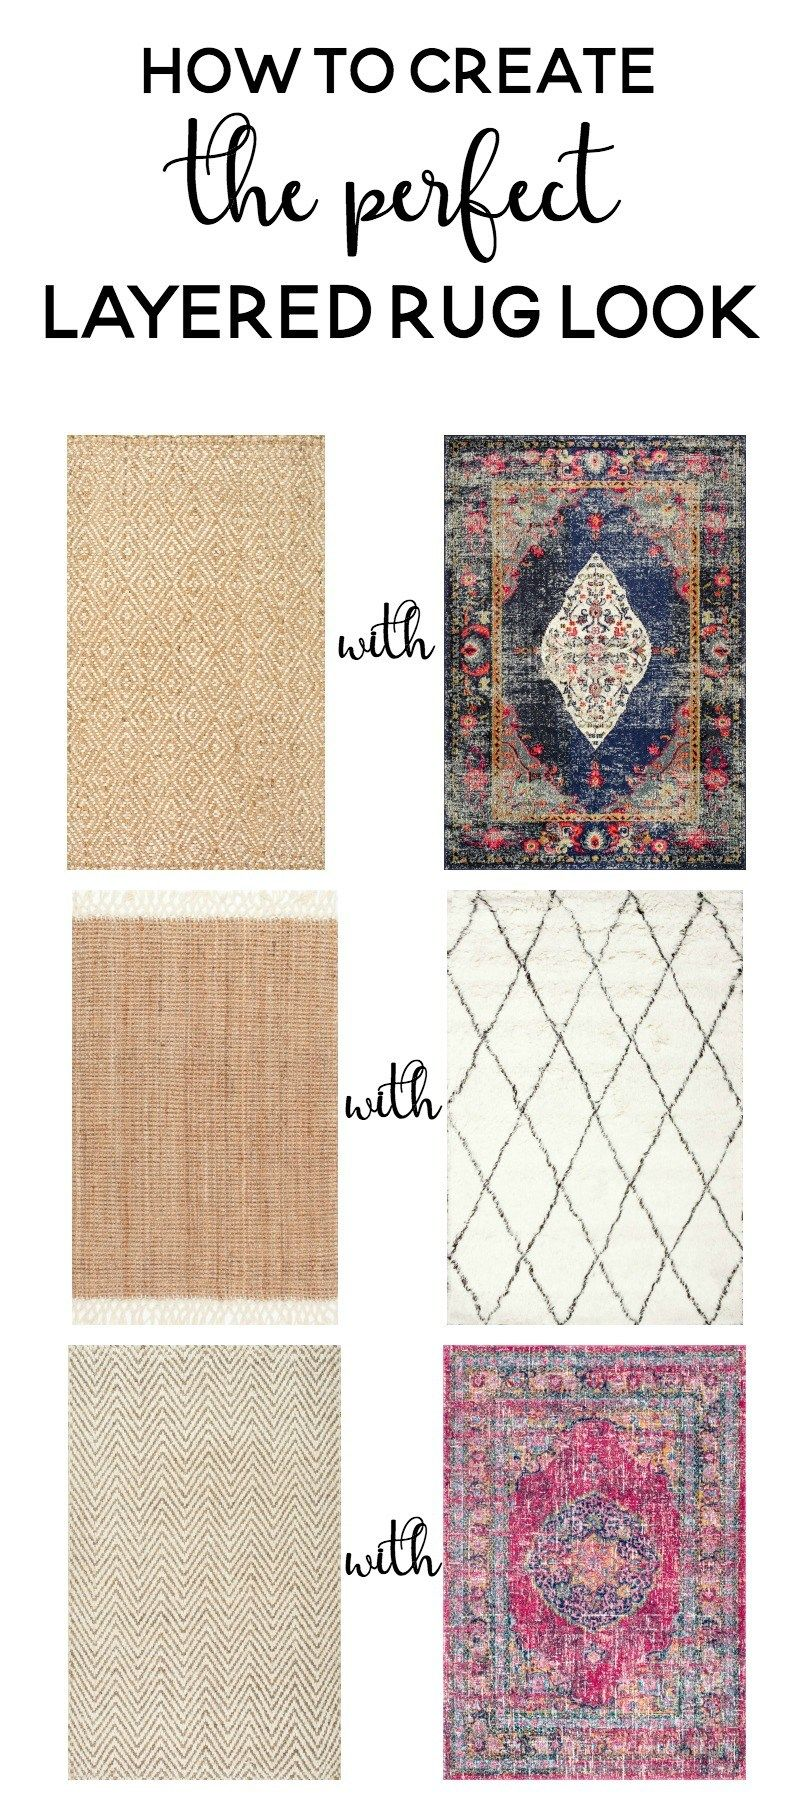 How To Create The Perfect Layered Rug Look Tons Of Rugs And Inspiration For Which Rugs To Layer An Layered Rugs Layered Rugs Living Room Round Rug Living Room